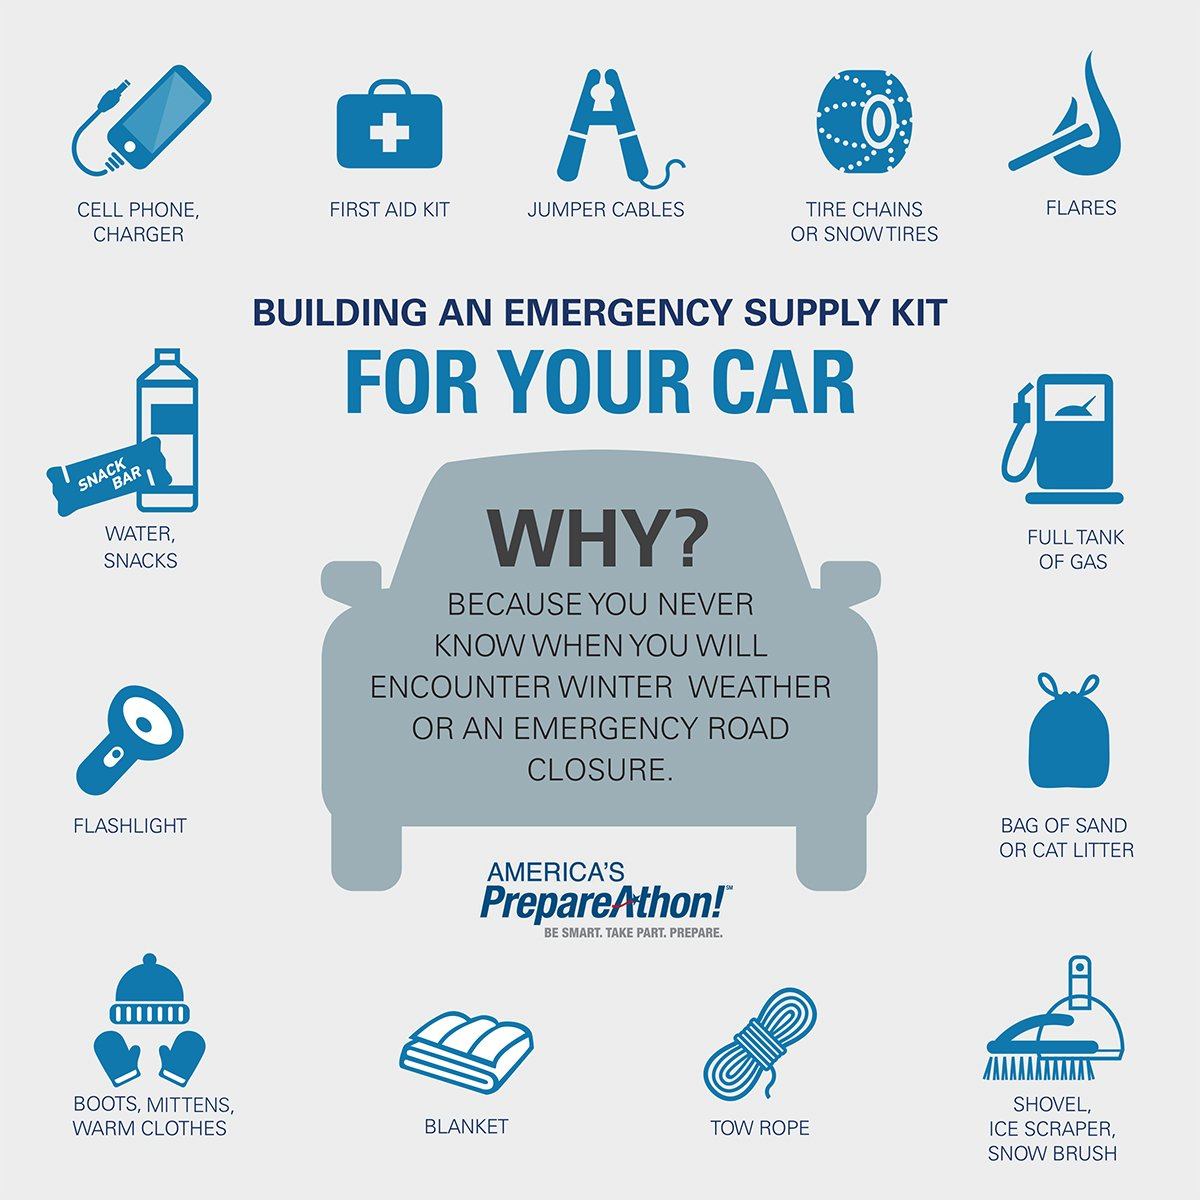 Traveling by car for #Thanksgiving? Take it slow & don't forget an emergency kit with warm clothes. #TravelSafe https://t.co/xg5J6Gz39z